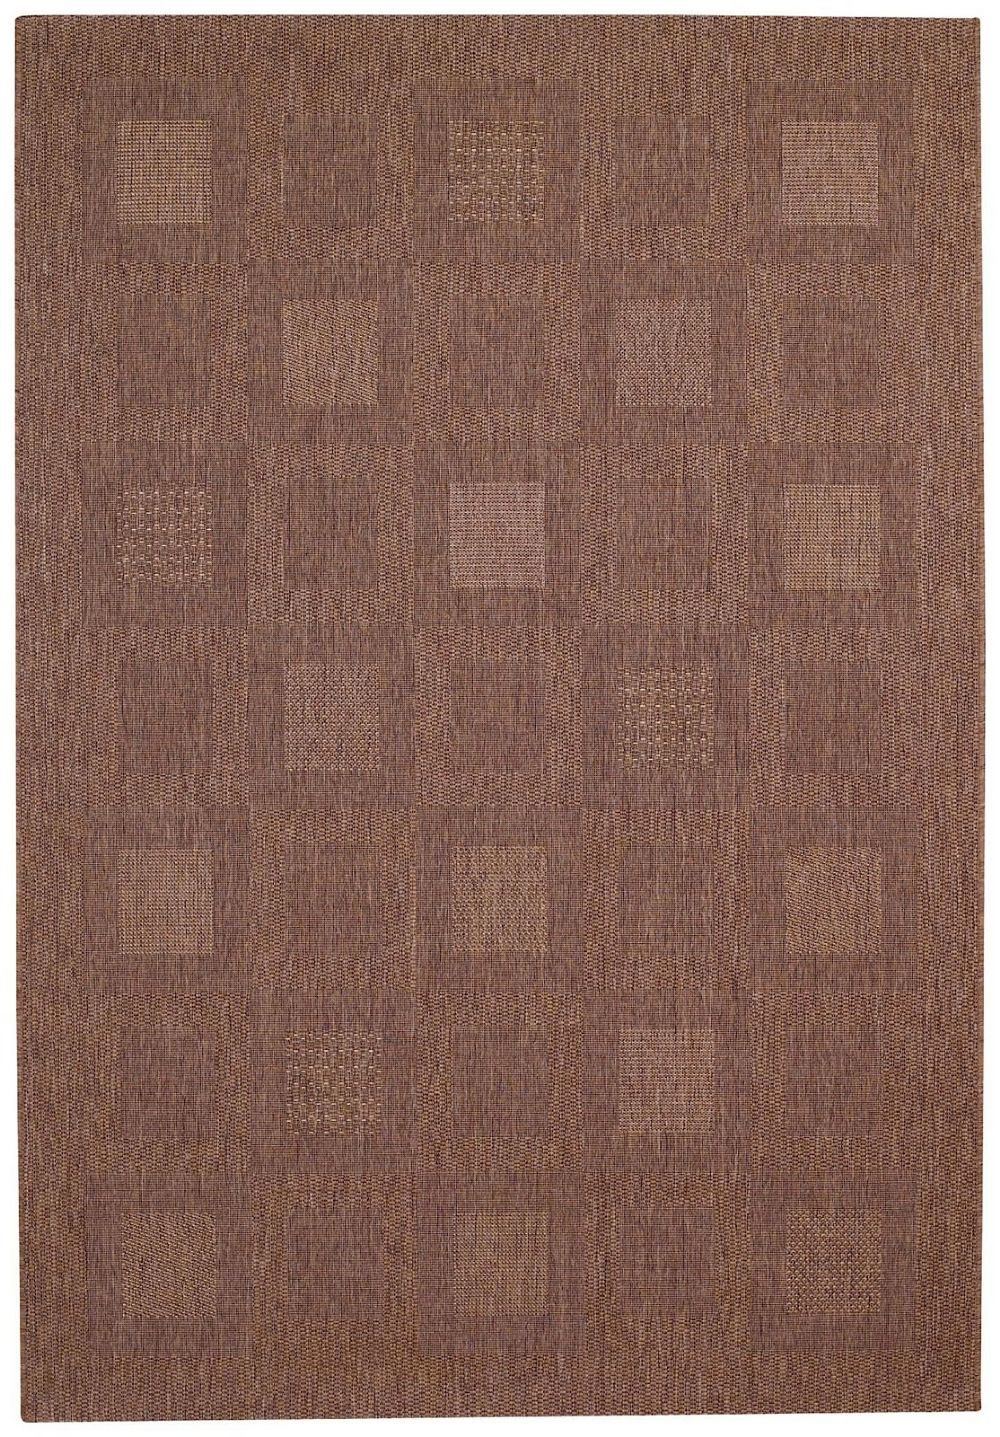 capel springs-blocks contemporary area rug collection